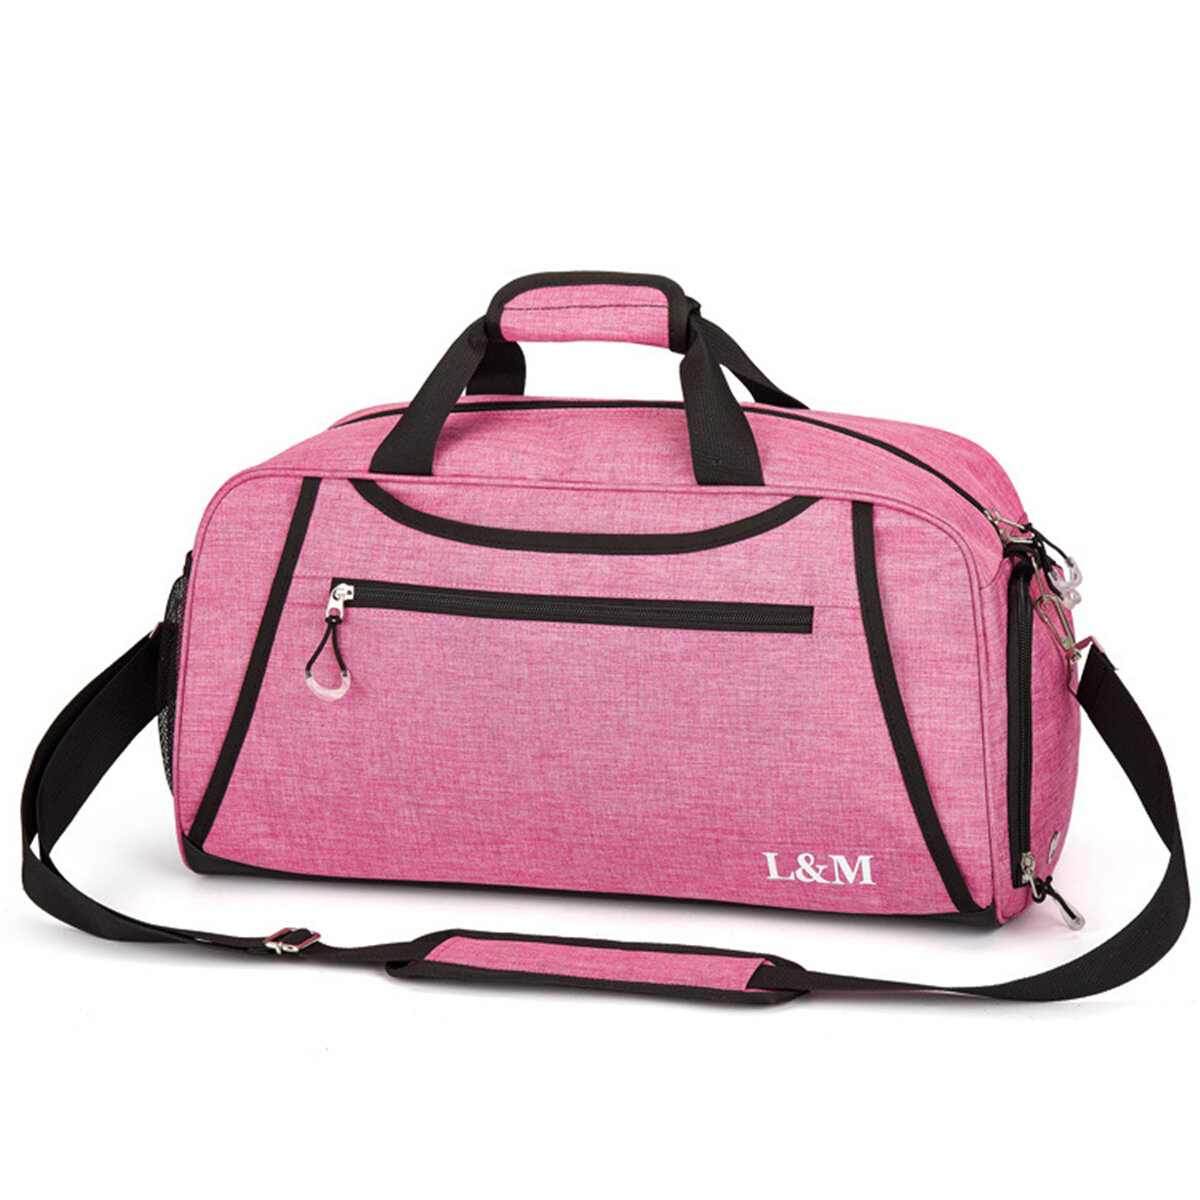 Sport Gym Training Fitness Bag Outdoor Travel Handbags Yoga Bags with Shoes Compartment - 2